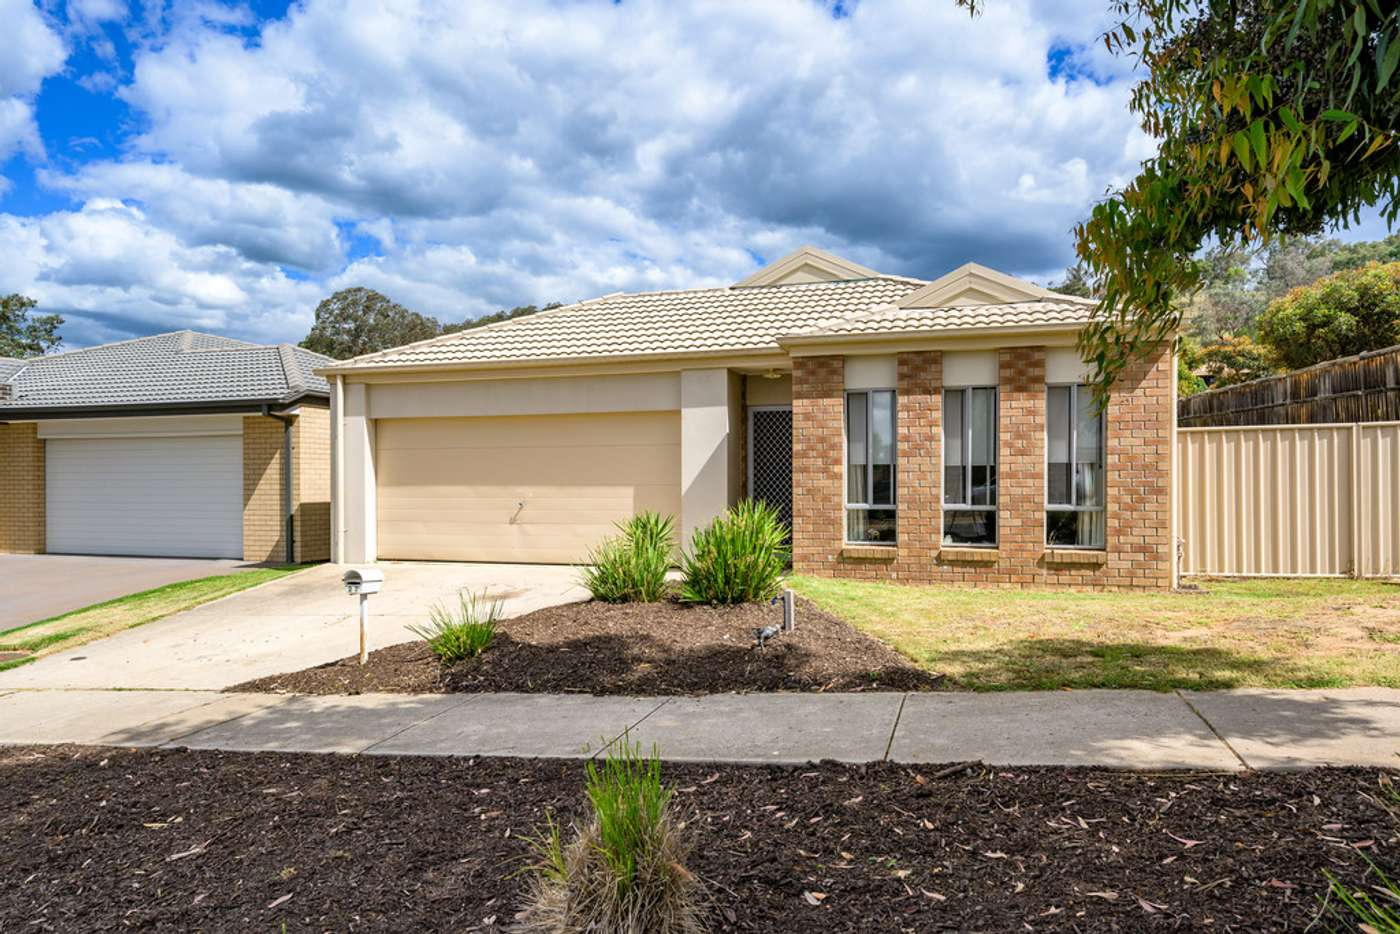 Main view of Homely house listing, 27 Maygar Avenue, Wodonga VIC 3690